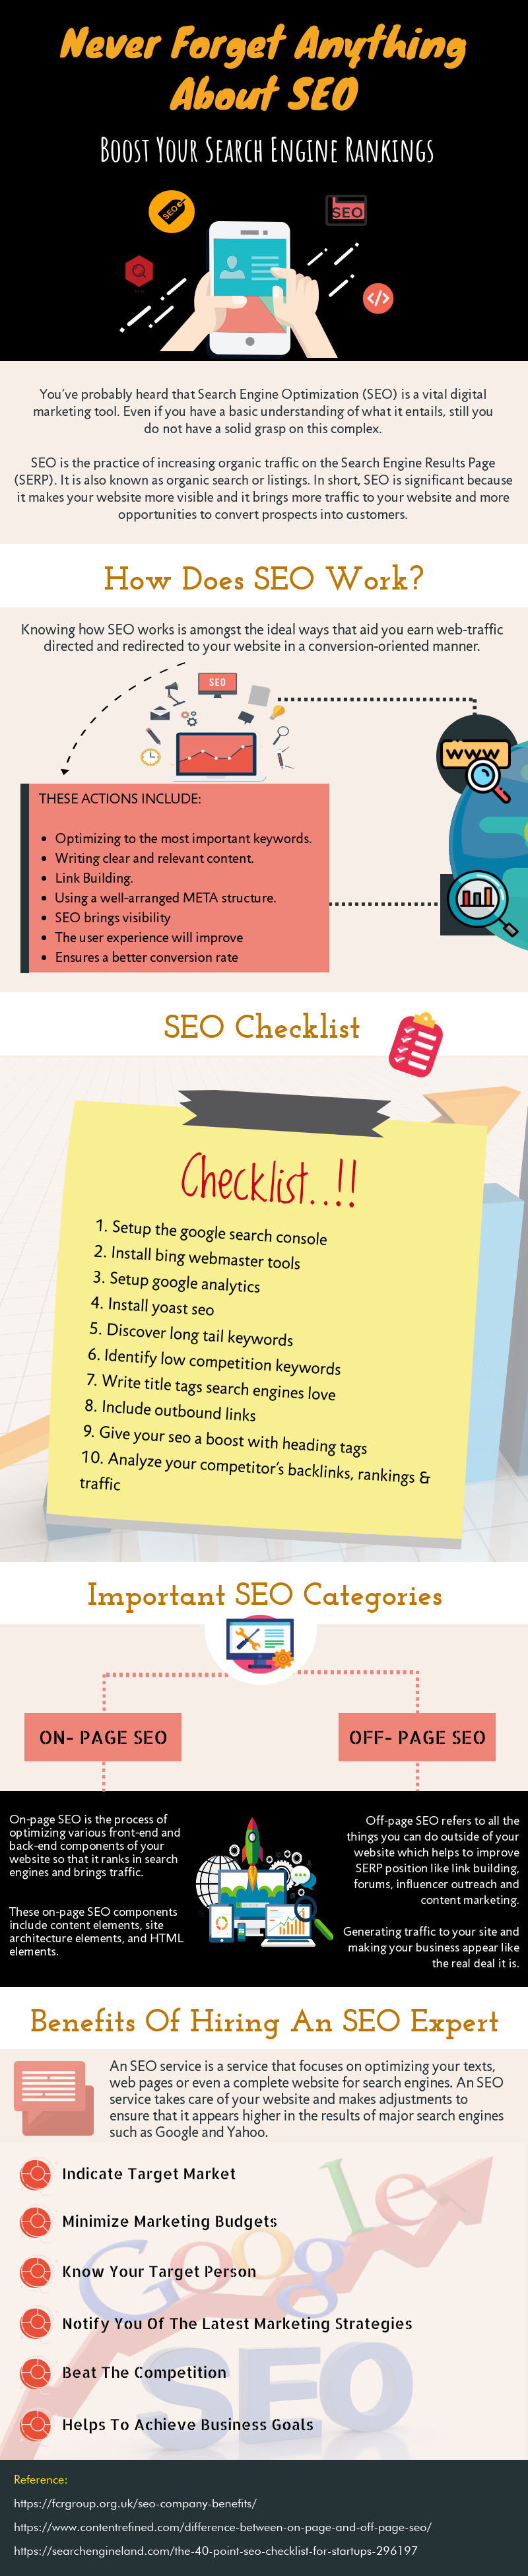 5 Basic SEO Tricks To Increase Visits To Your Page